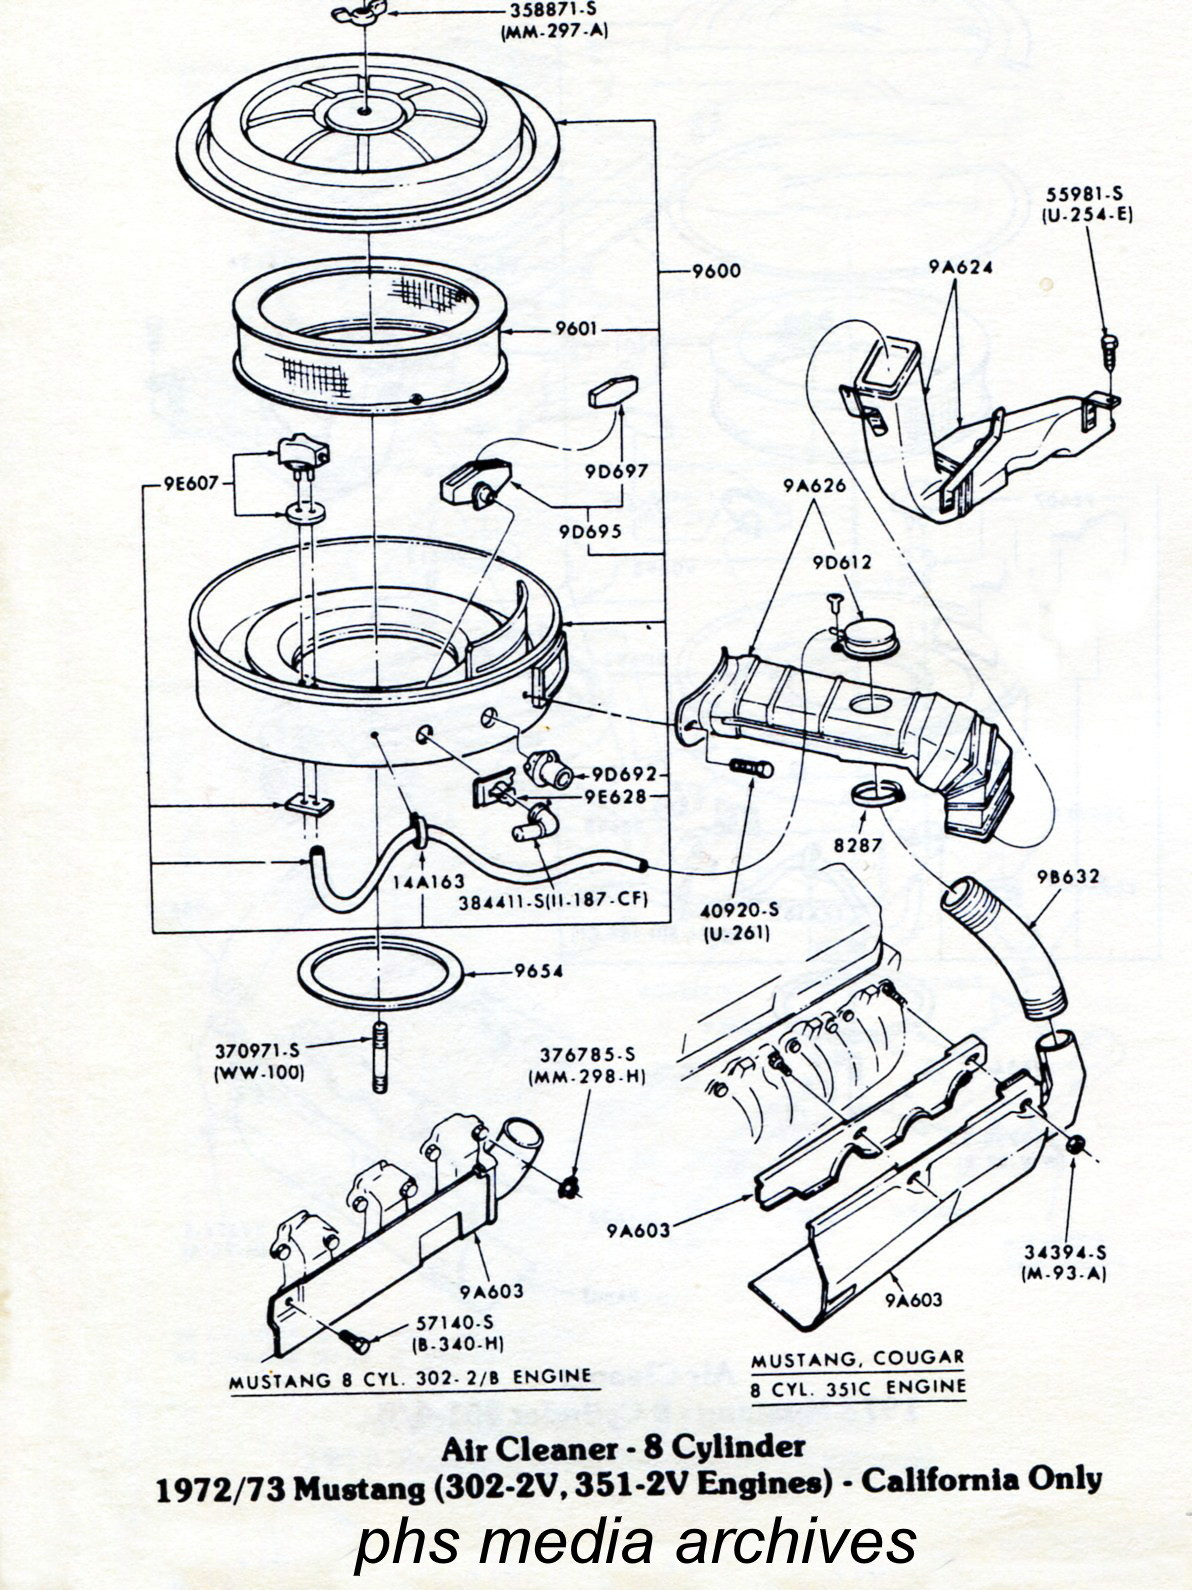 351 v8 engine diagram